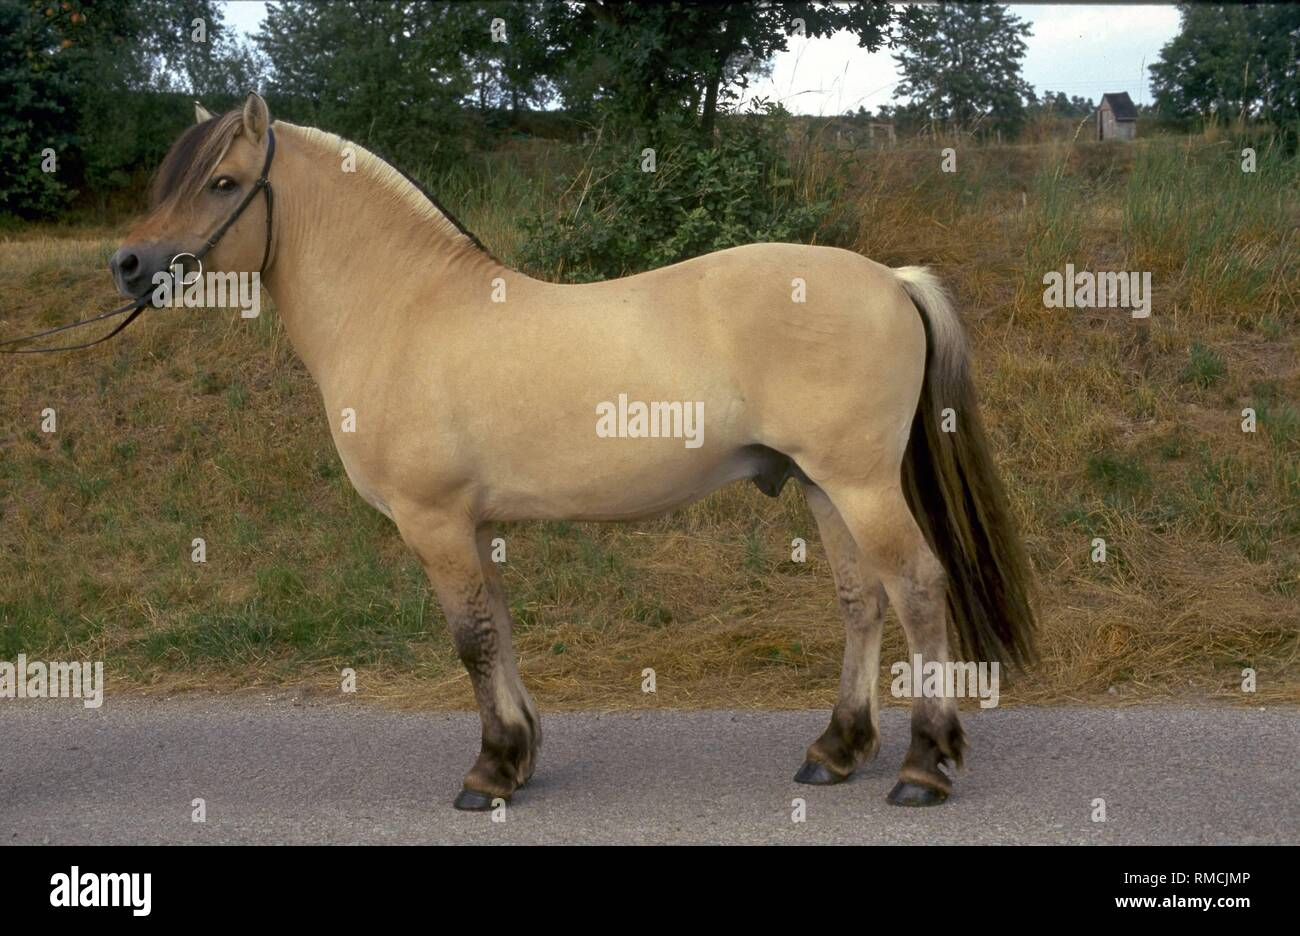 The Icelandic Horse Also Norwegian Is The Smallest Of Today S Horse Breeds The Icelandic Horse Was The Horse Of The Vikings They Were Carried In The Warriors Longships When They Raided The